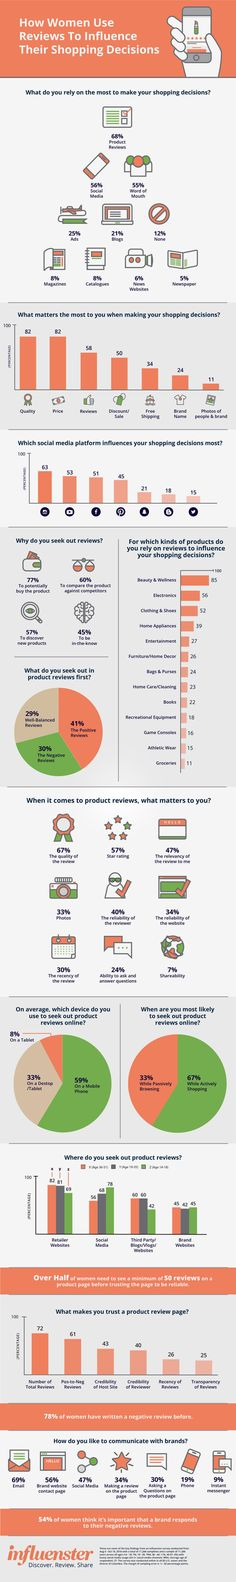 Sell Women's Products? Online 30+ #Ecommerce Stats You Need to Know #Infographic